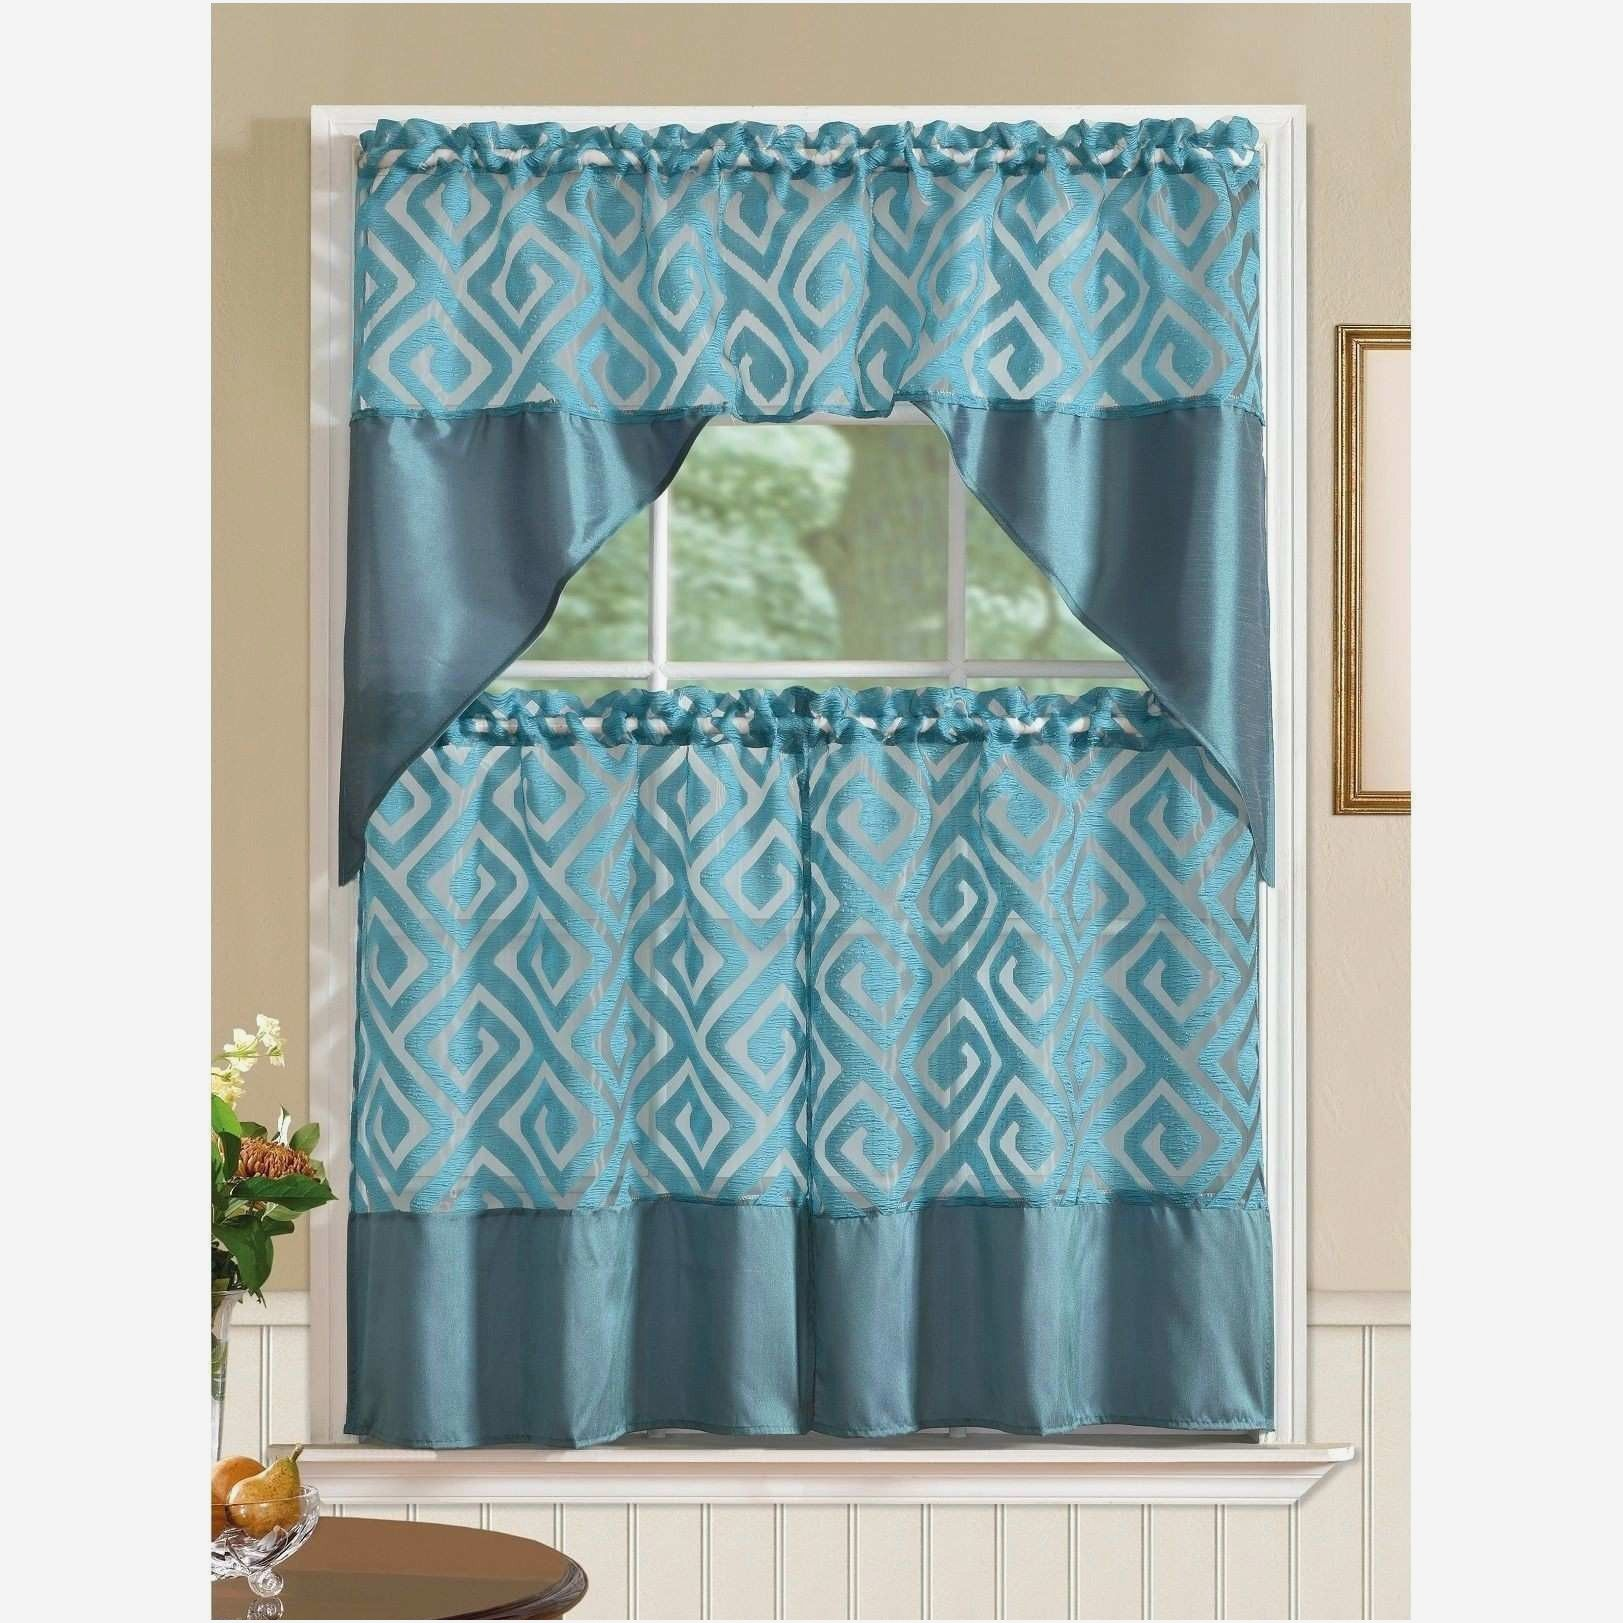 Kitchen Curtains At Jcpenney Kitchen Curtain Sets Curtains